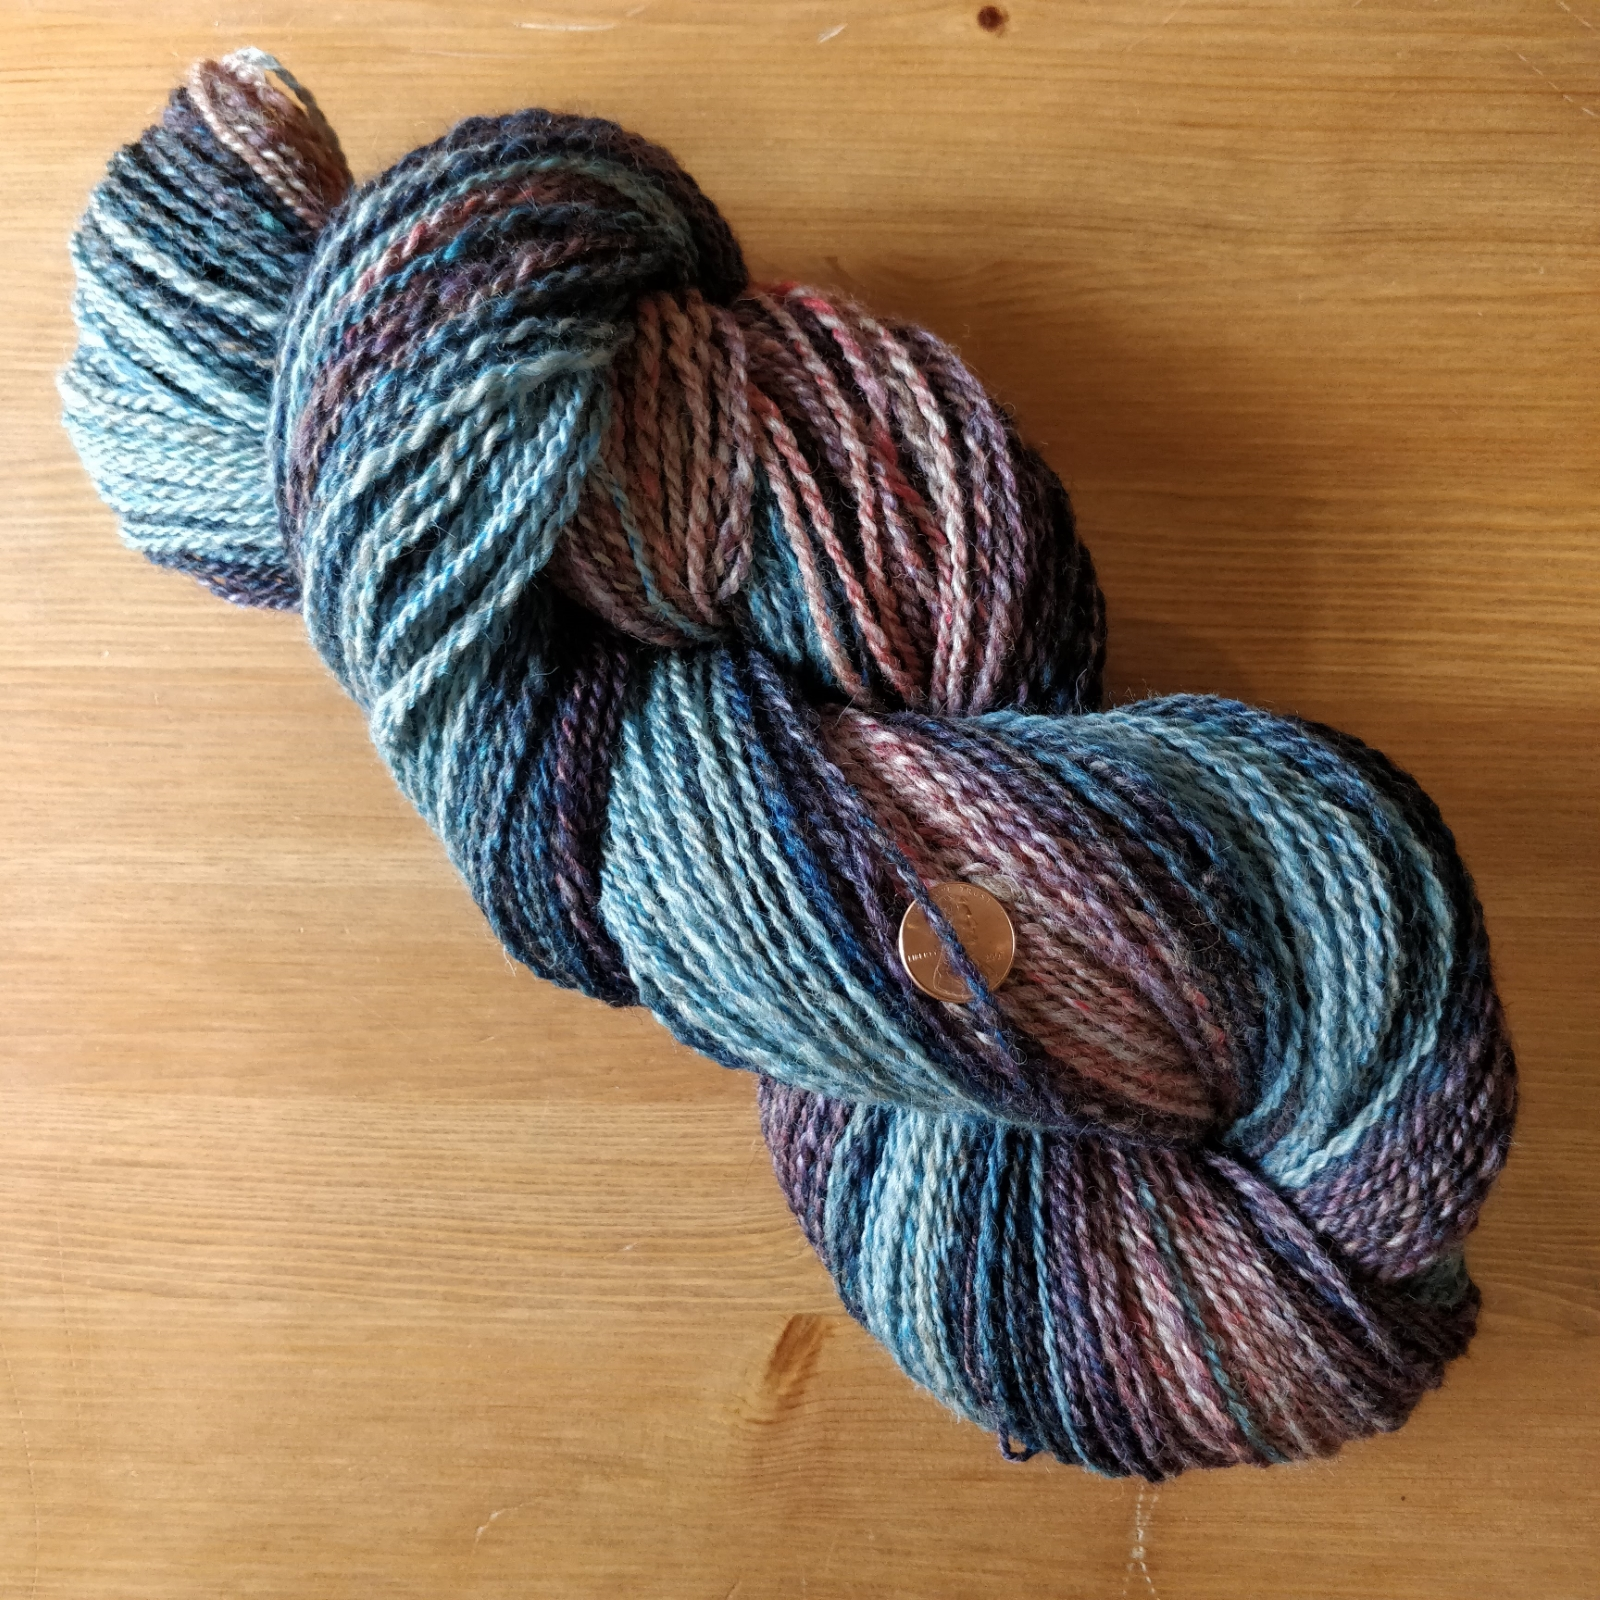 skein of two-ply yarn in a gradient from pink to purple to blue